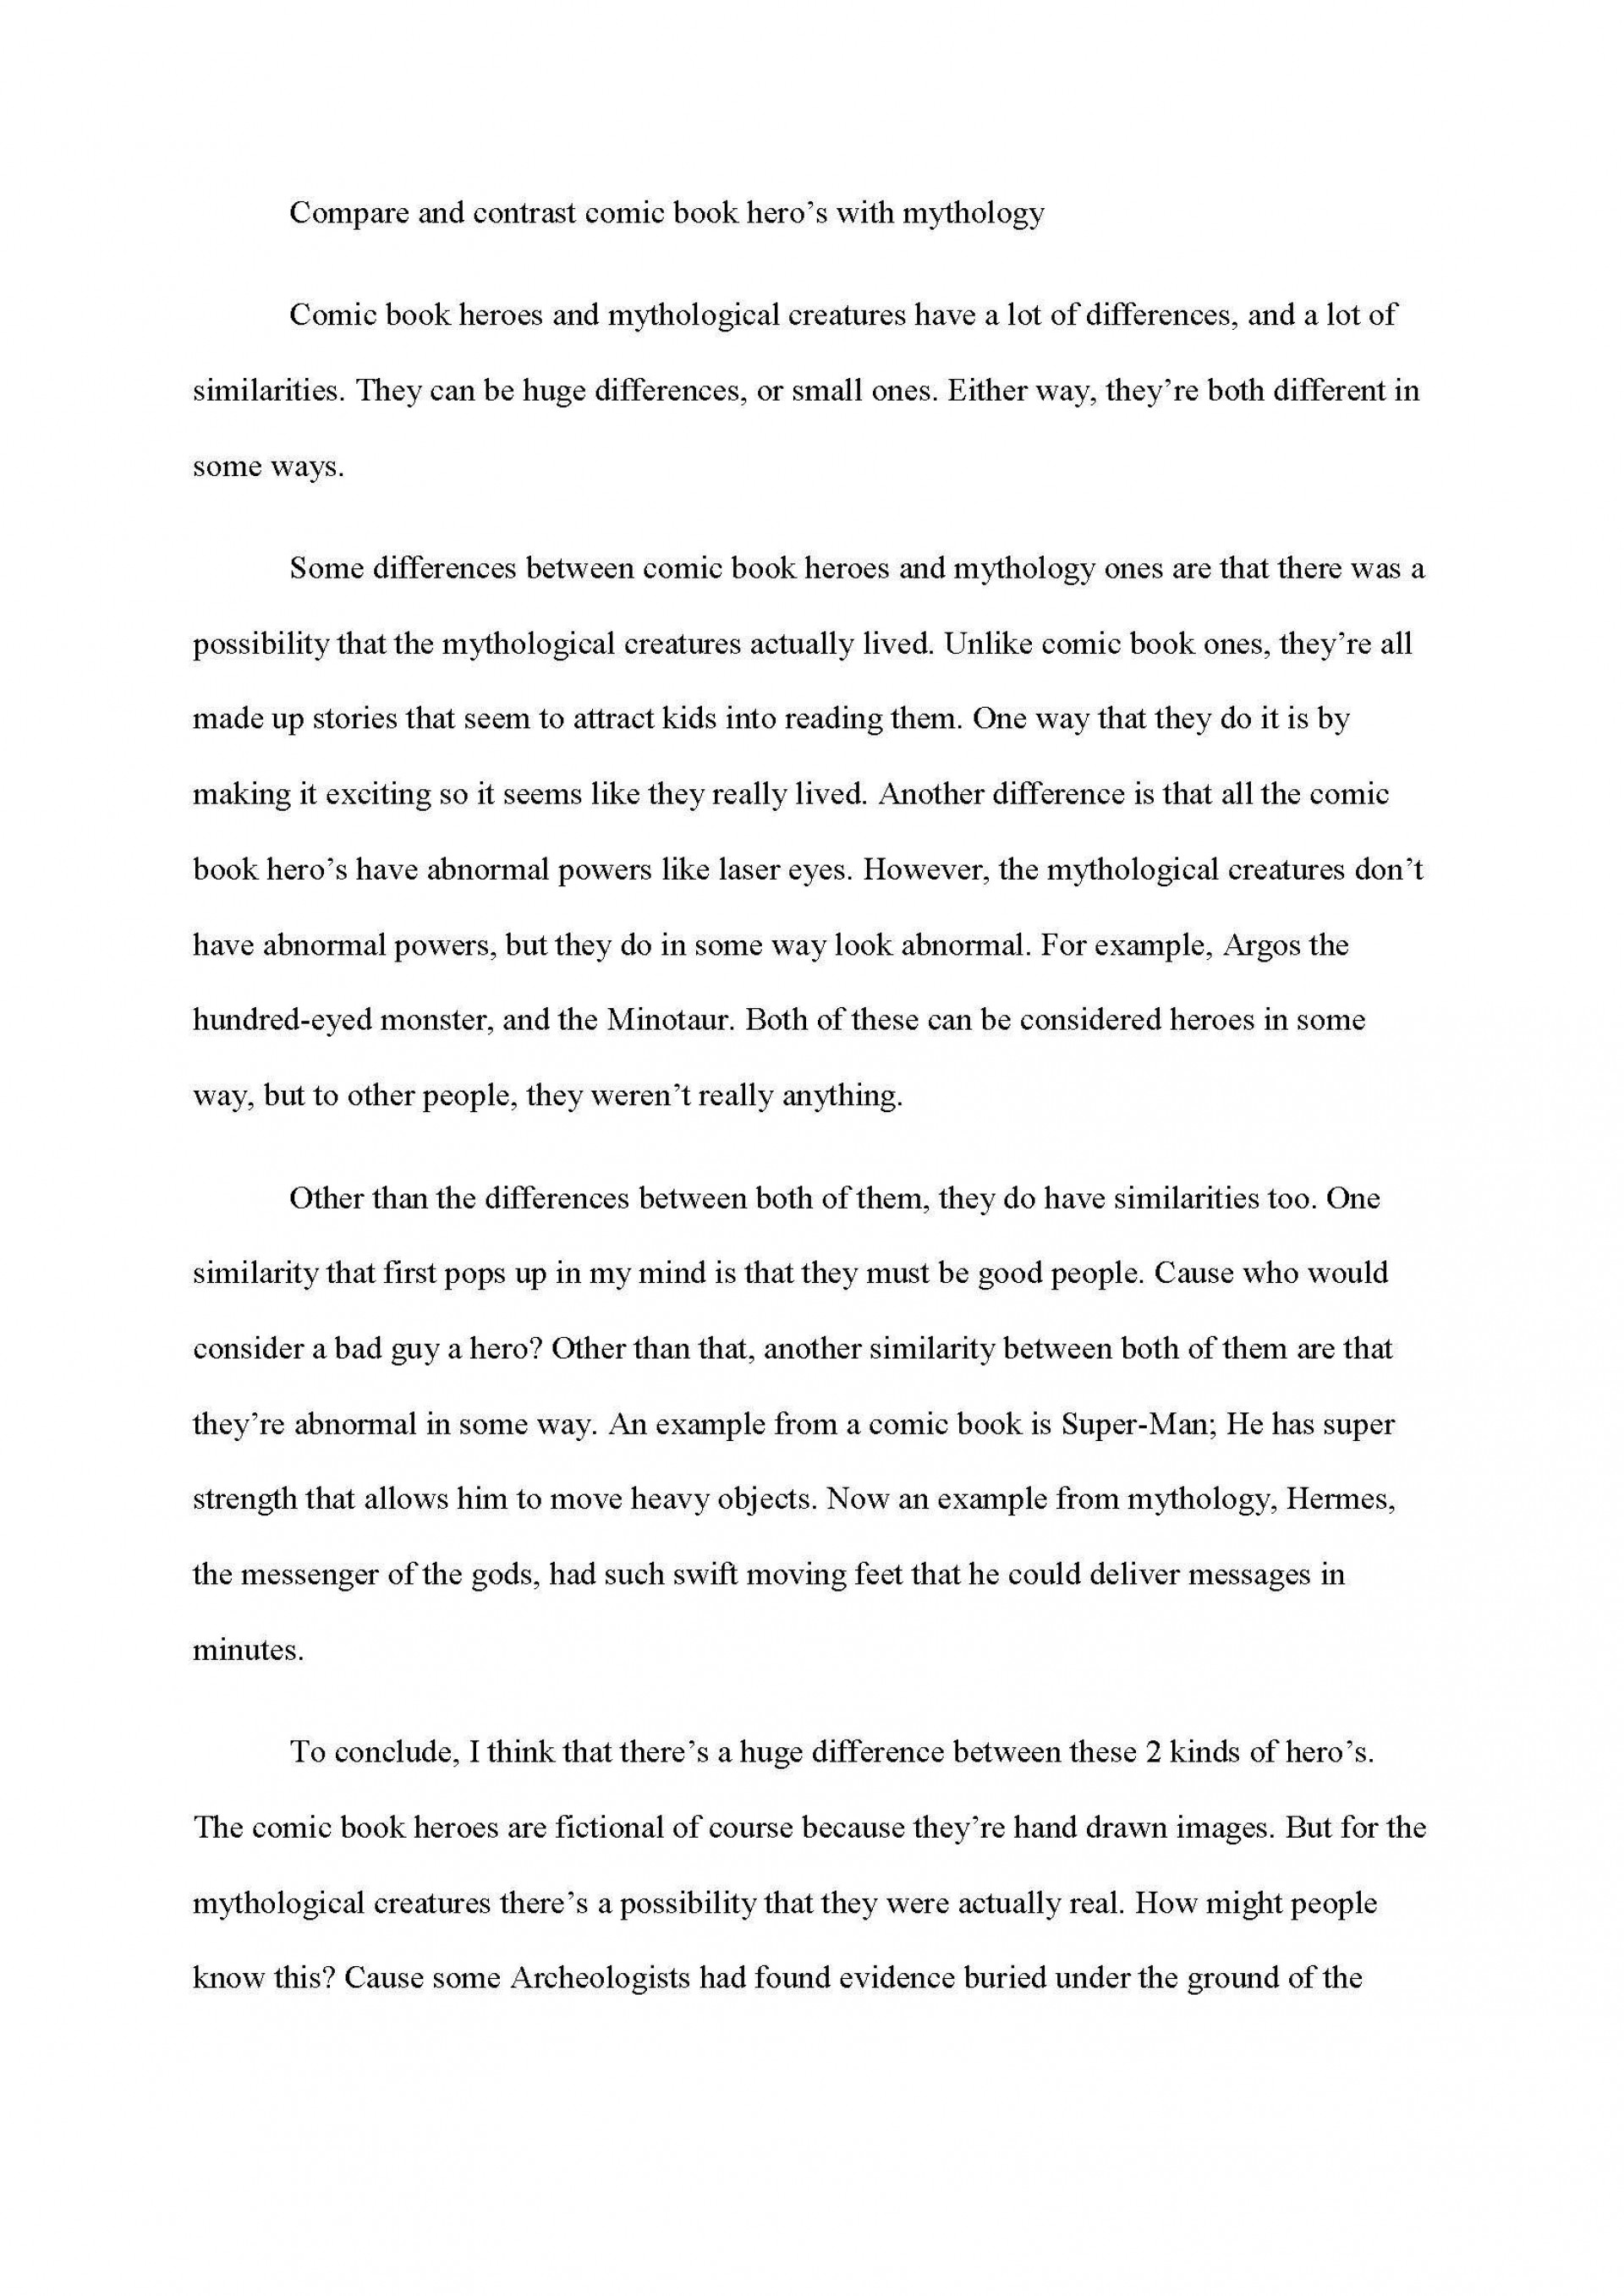 001 Exceptional Compare And Contrast Essay Example College Picture  For Topic Free Comparison1920